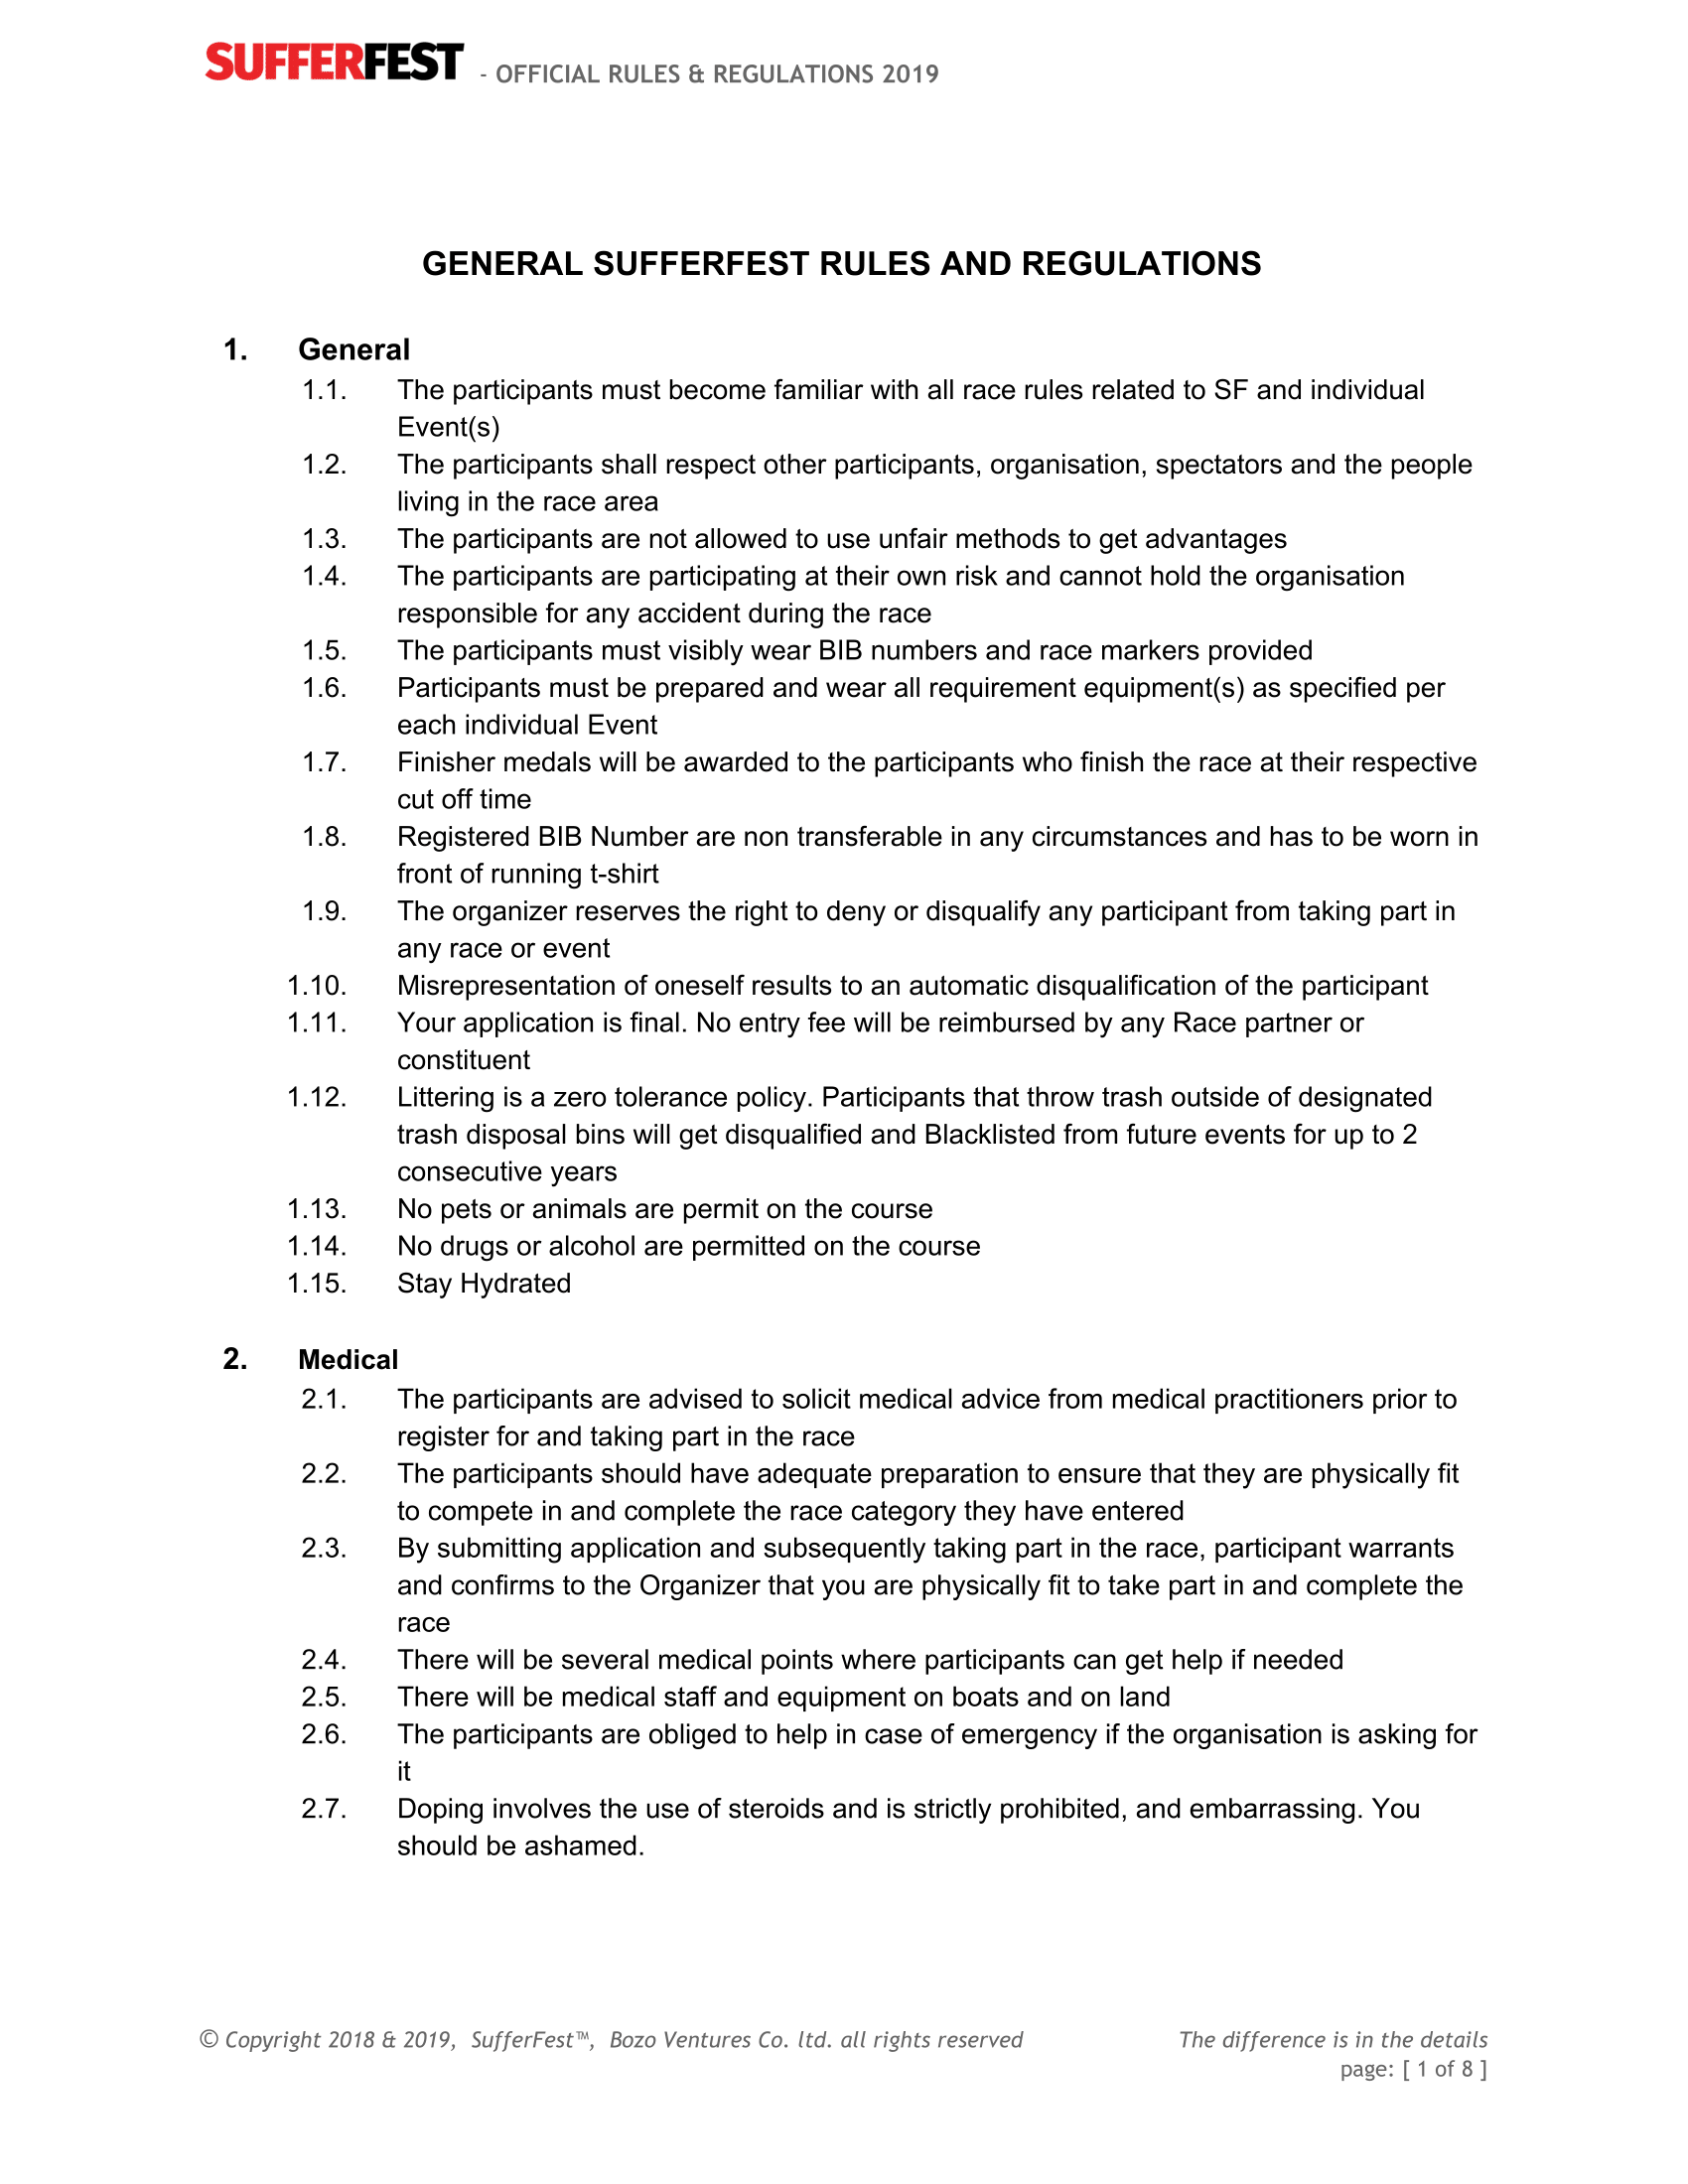 [ENG] SufferFest™ - Official Rules and Regulations - 20181022-2.png